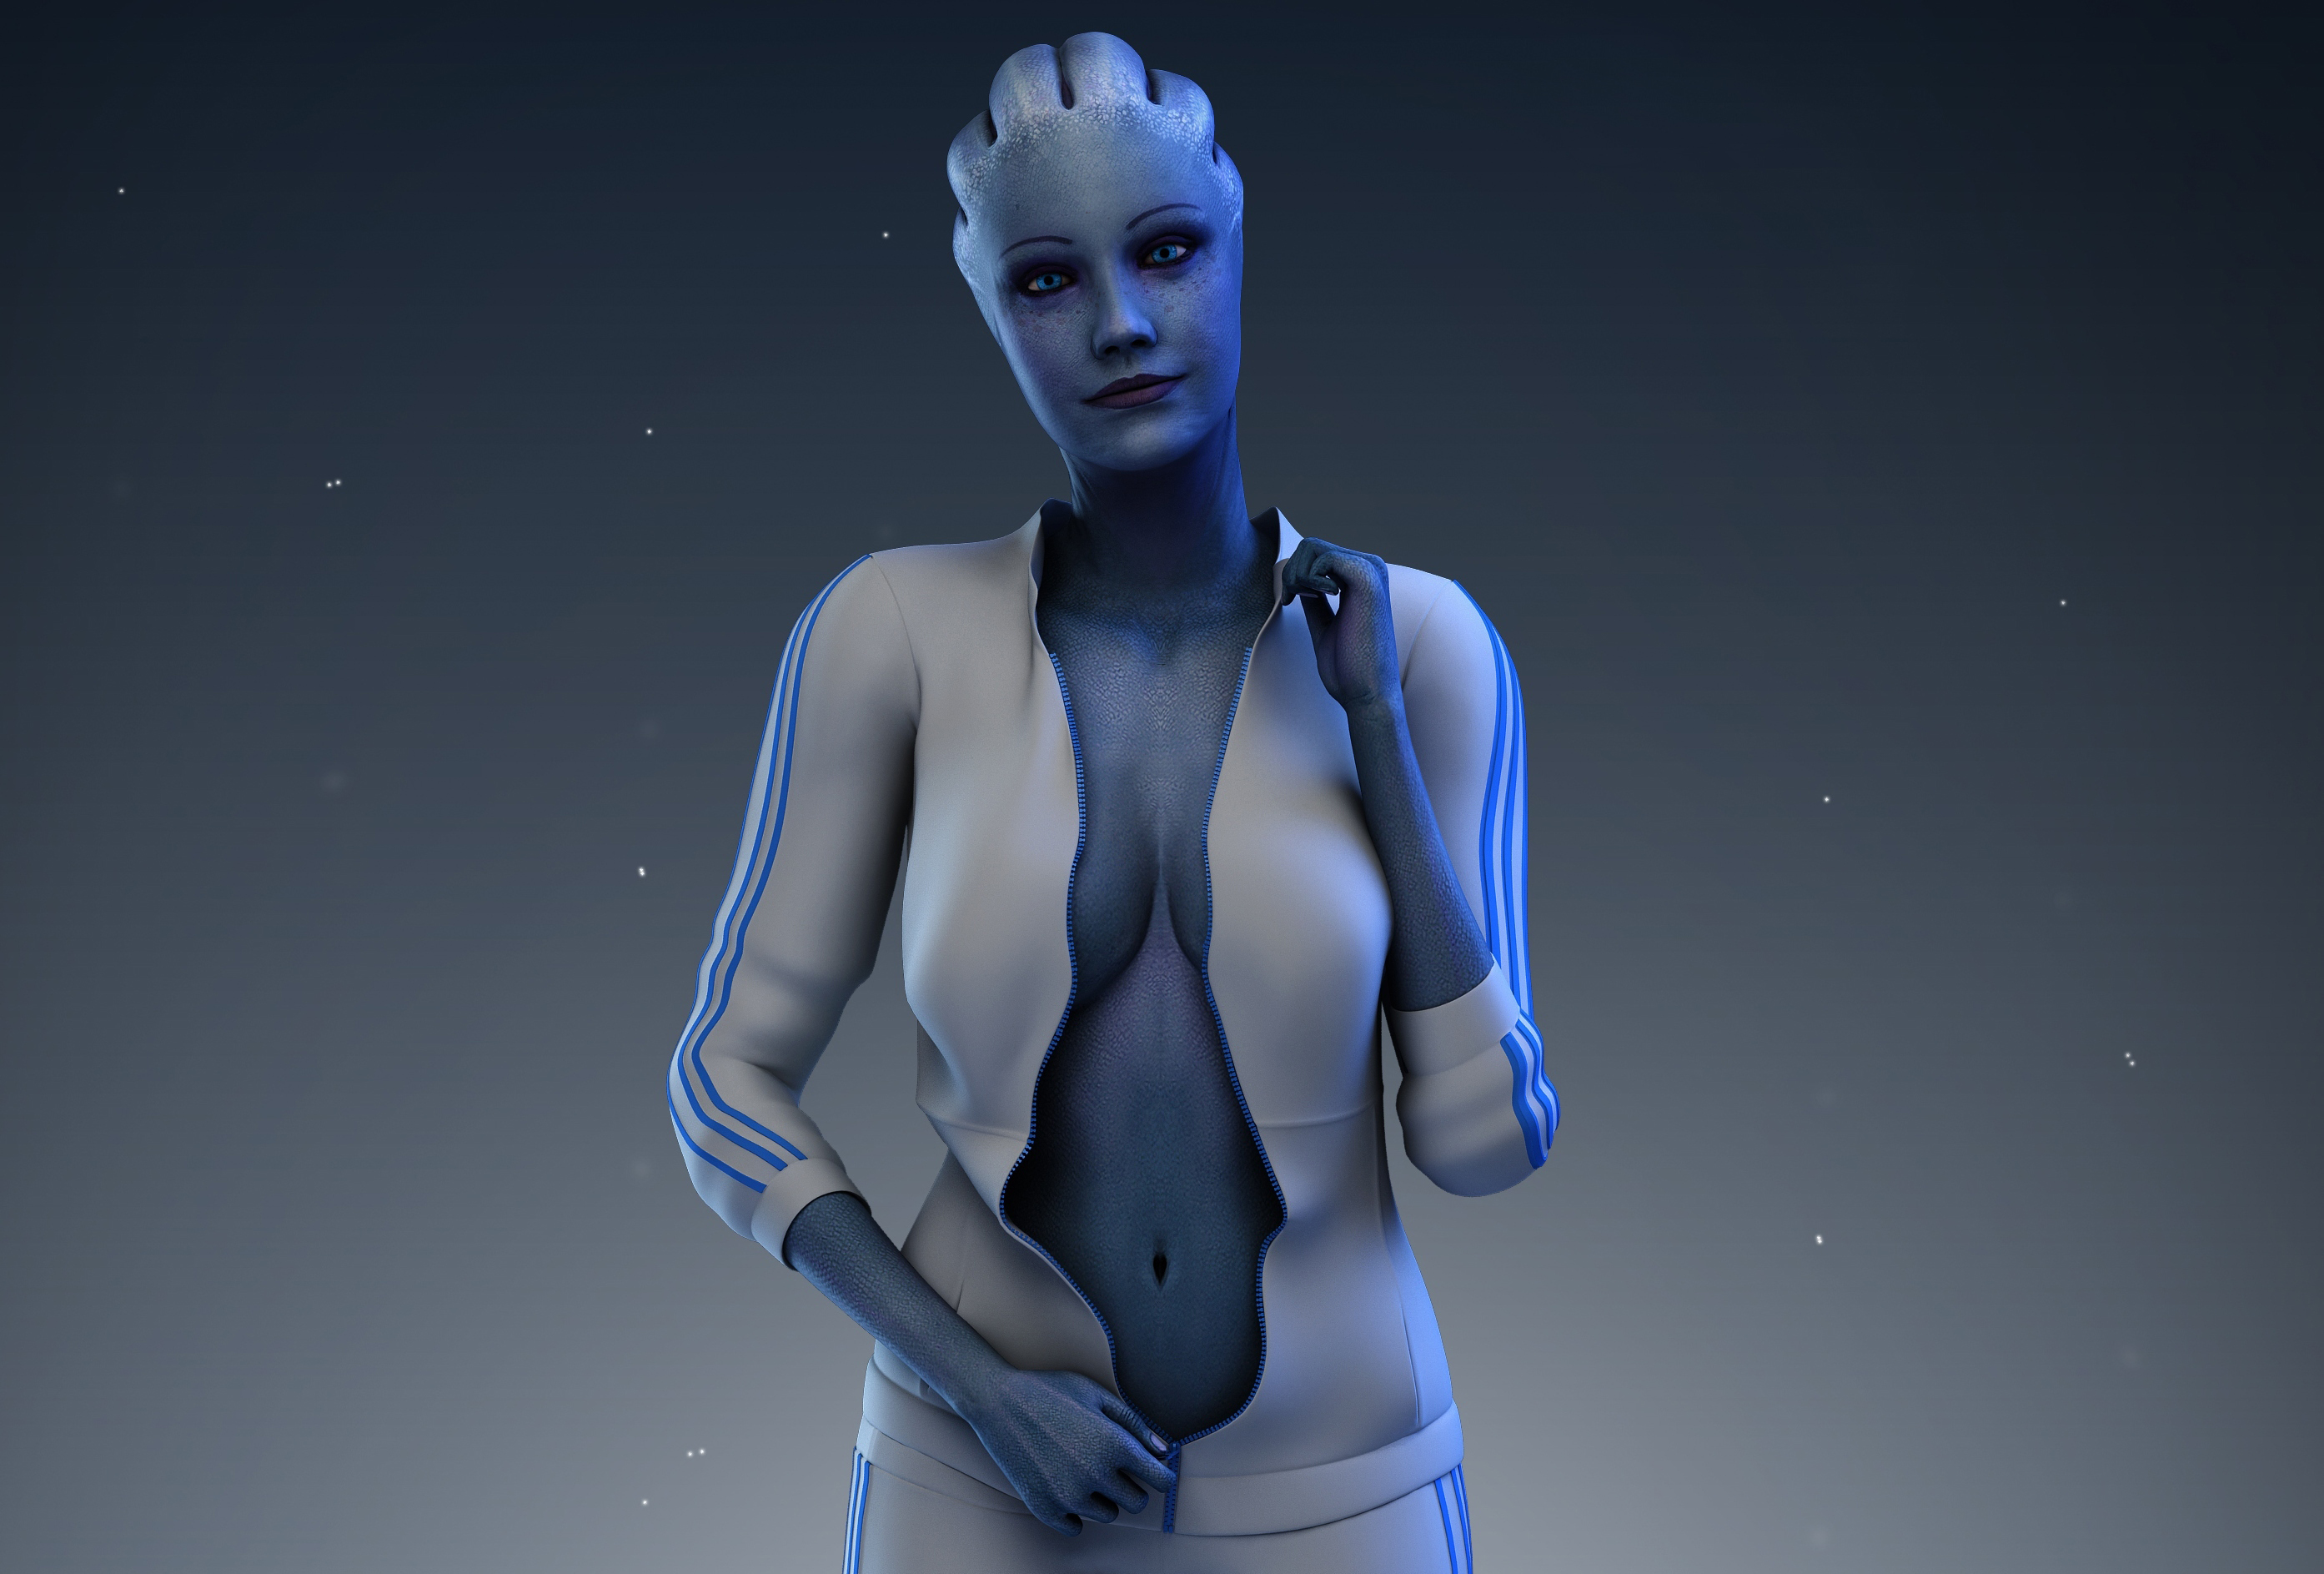 Mass effect liara bound gagged stories hentia films